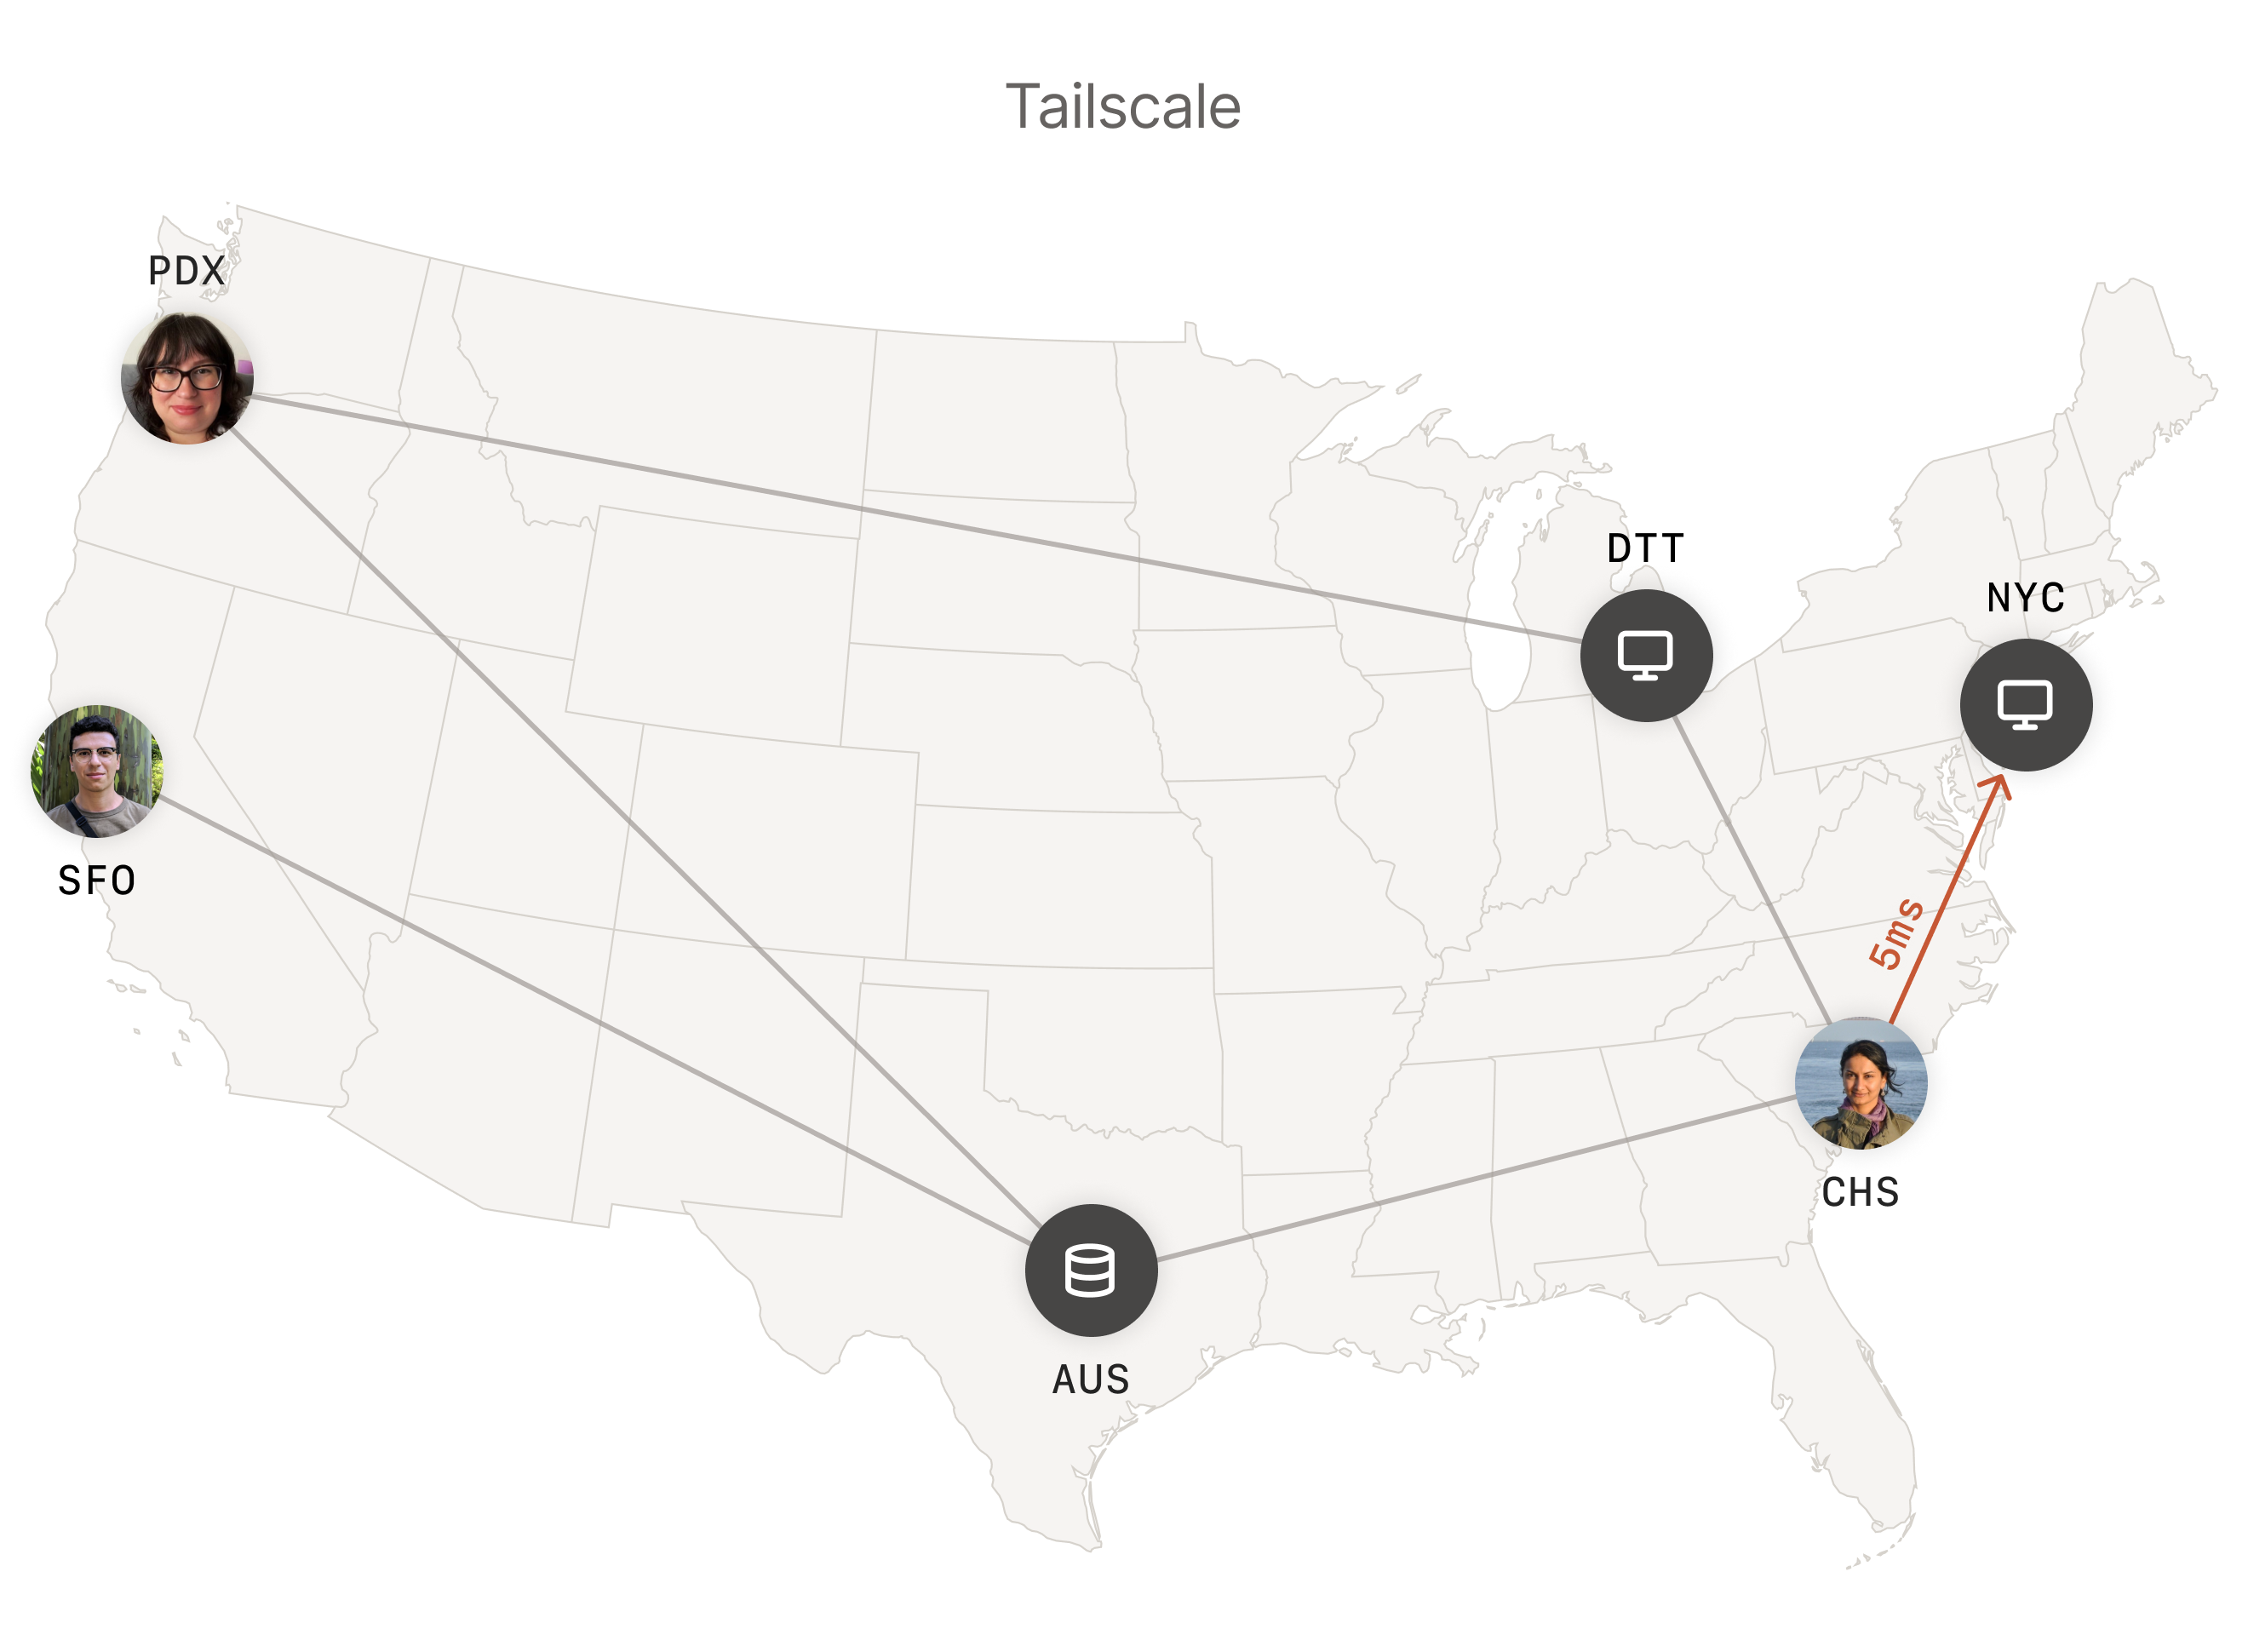 The same user in Charleston connecting to the New York City computer directly thanks to Tailscale.